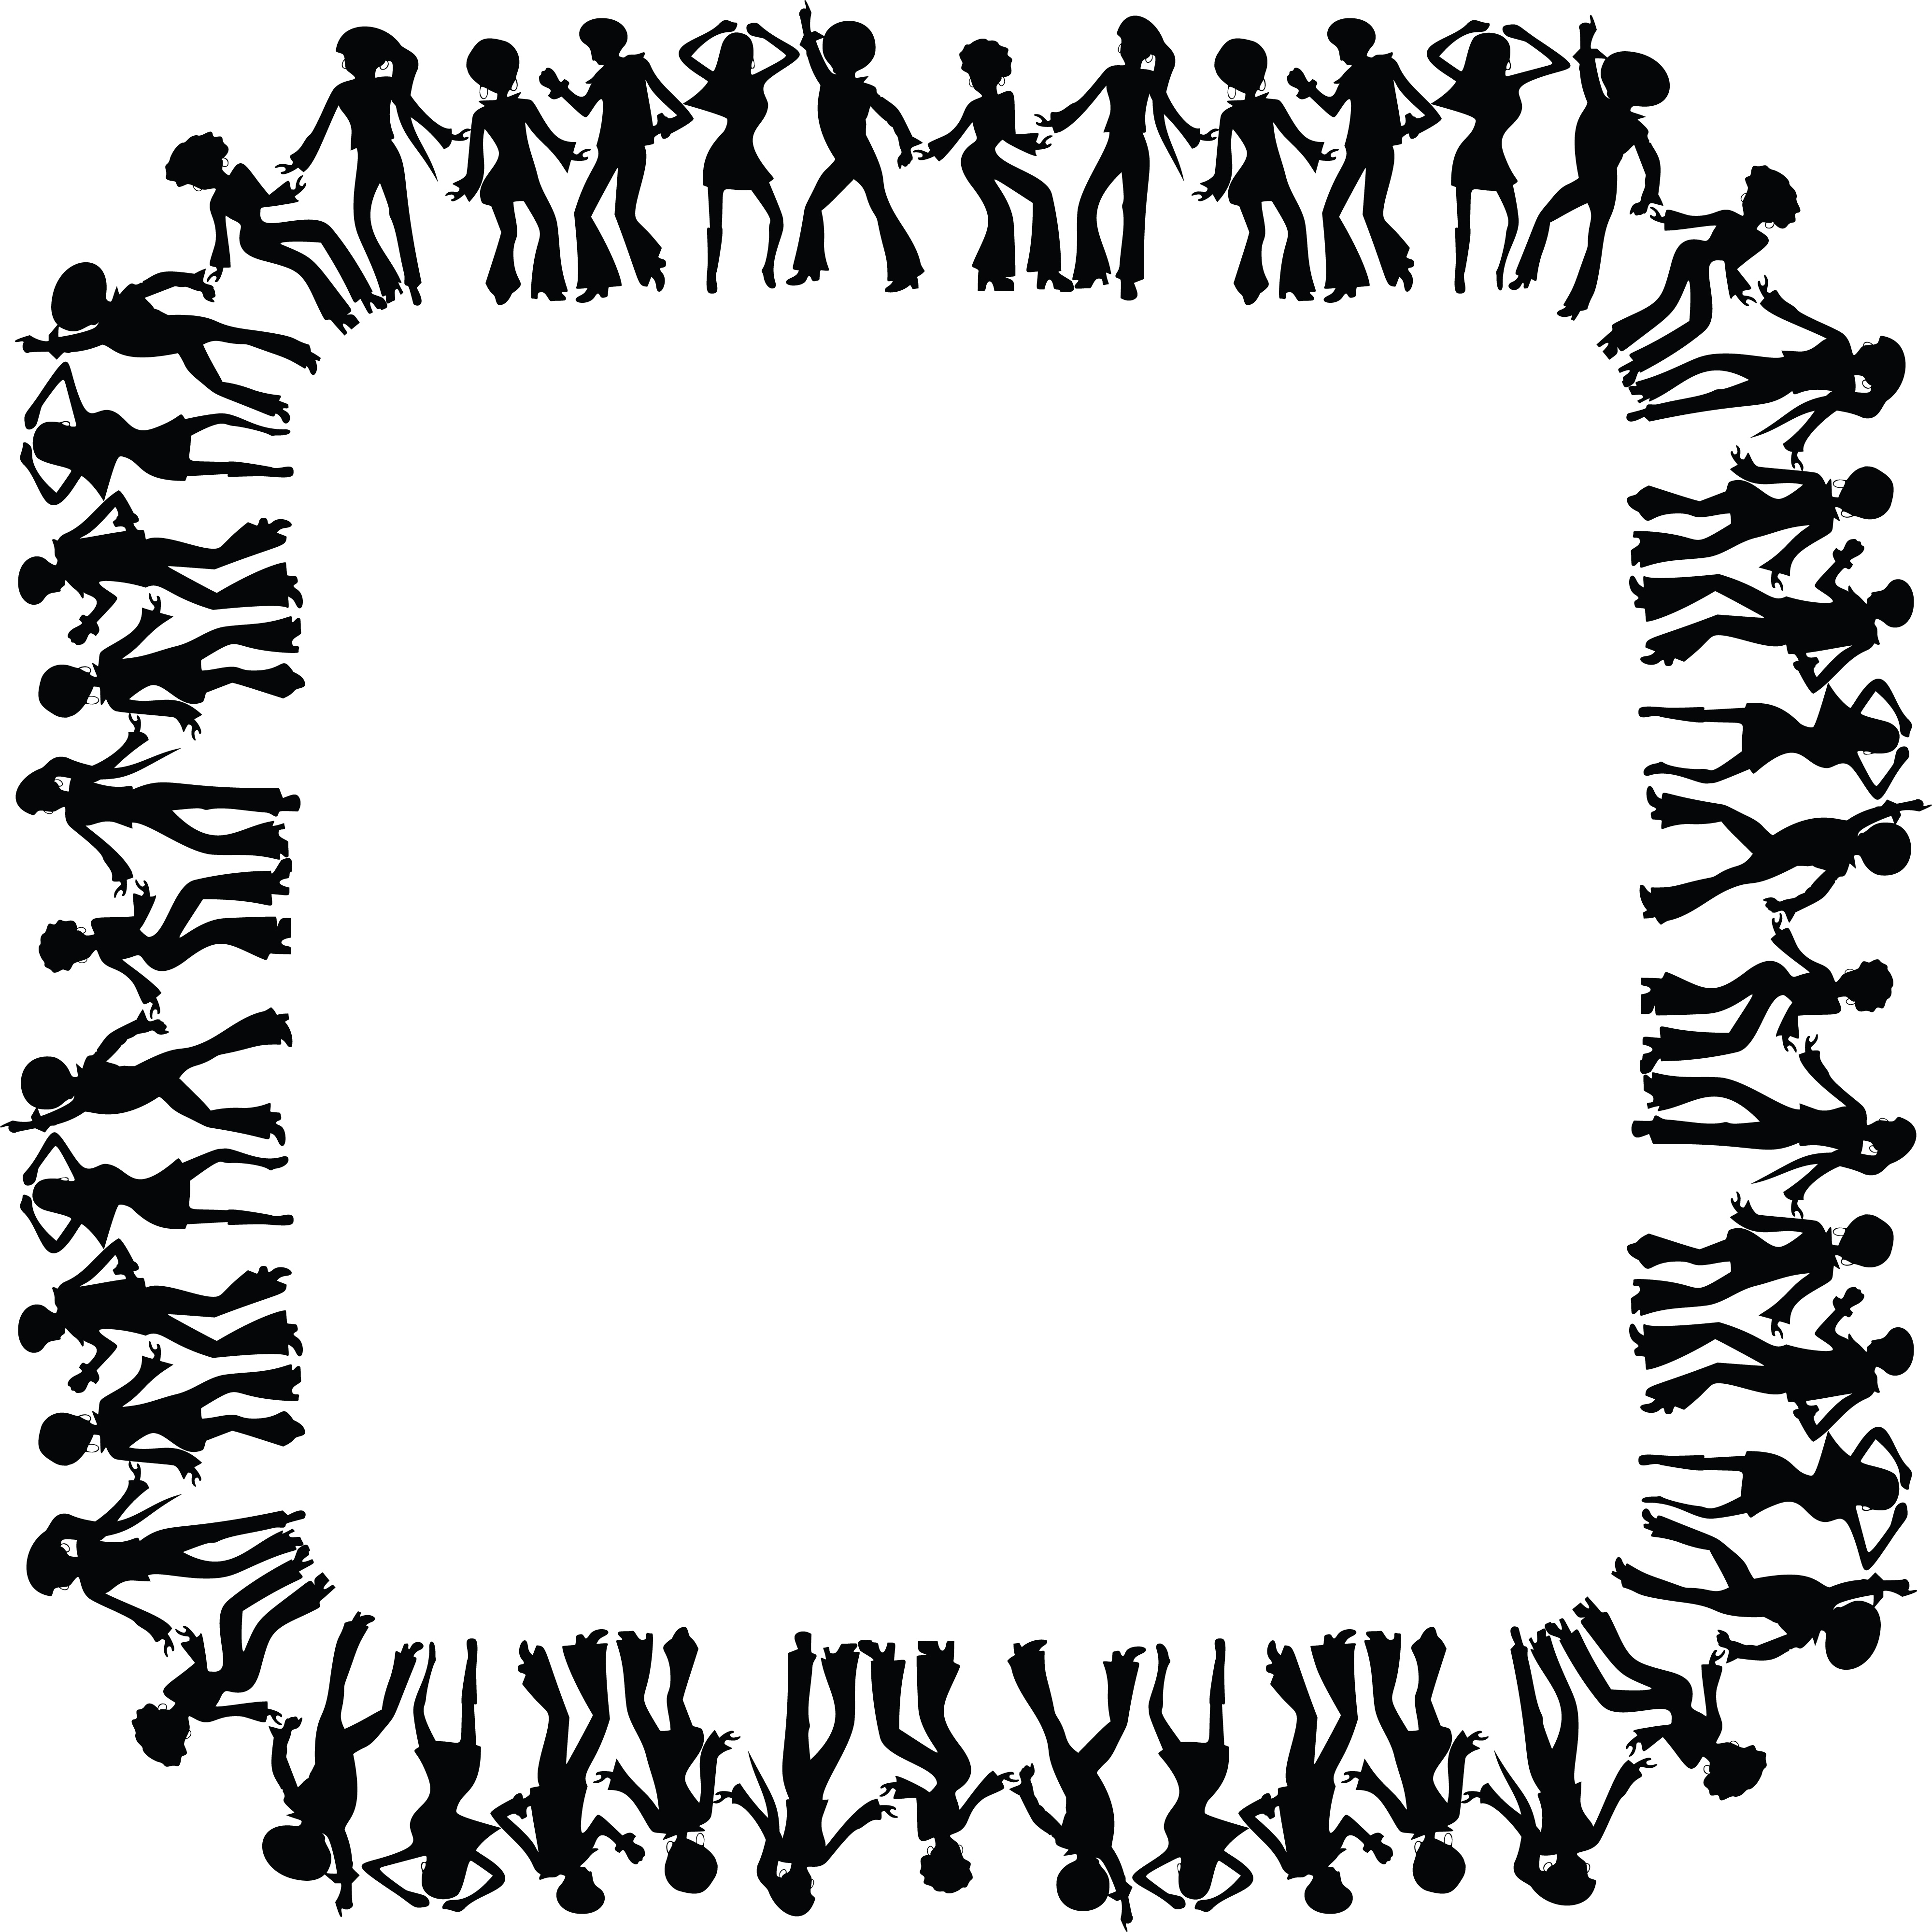 Free Clipart of a square black and white border frame of disco dancers.